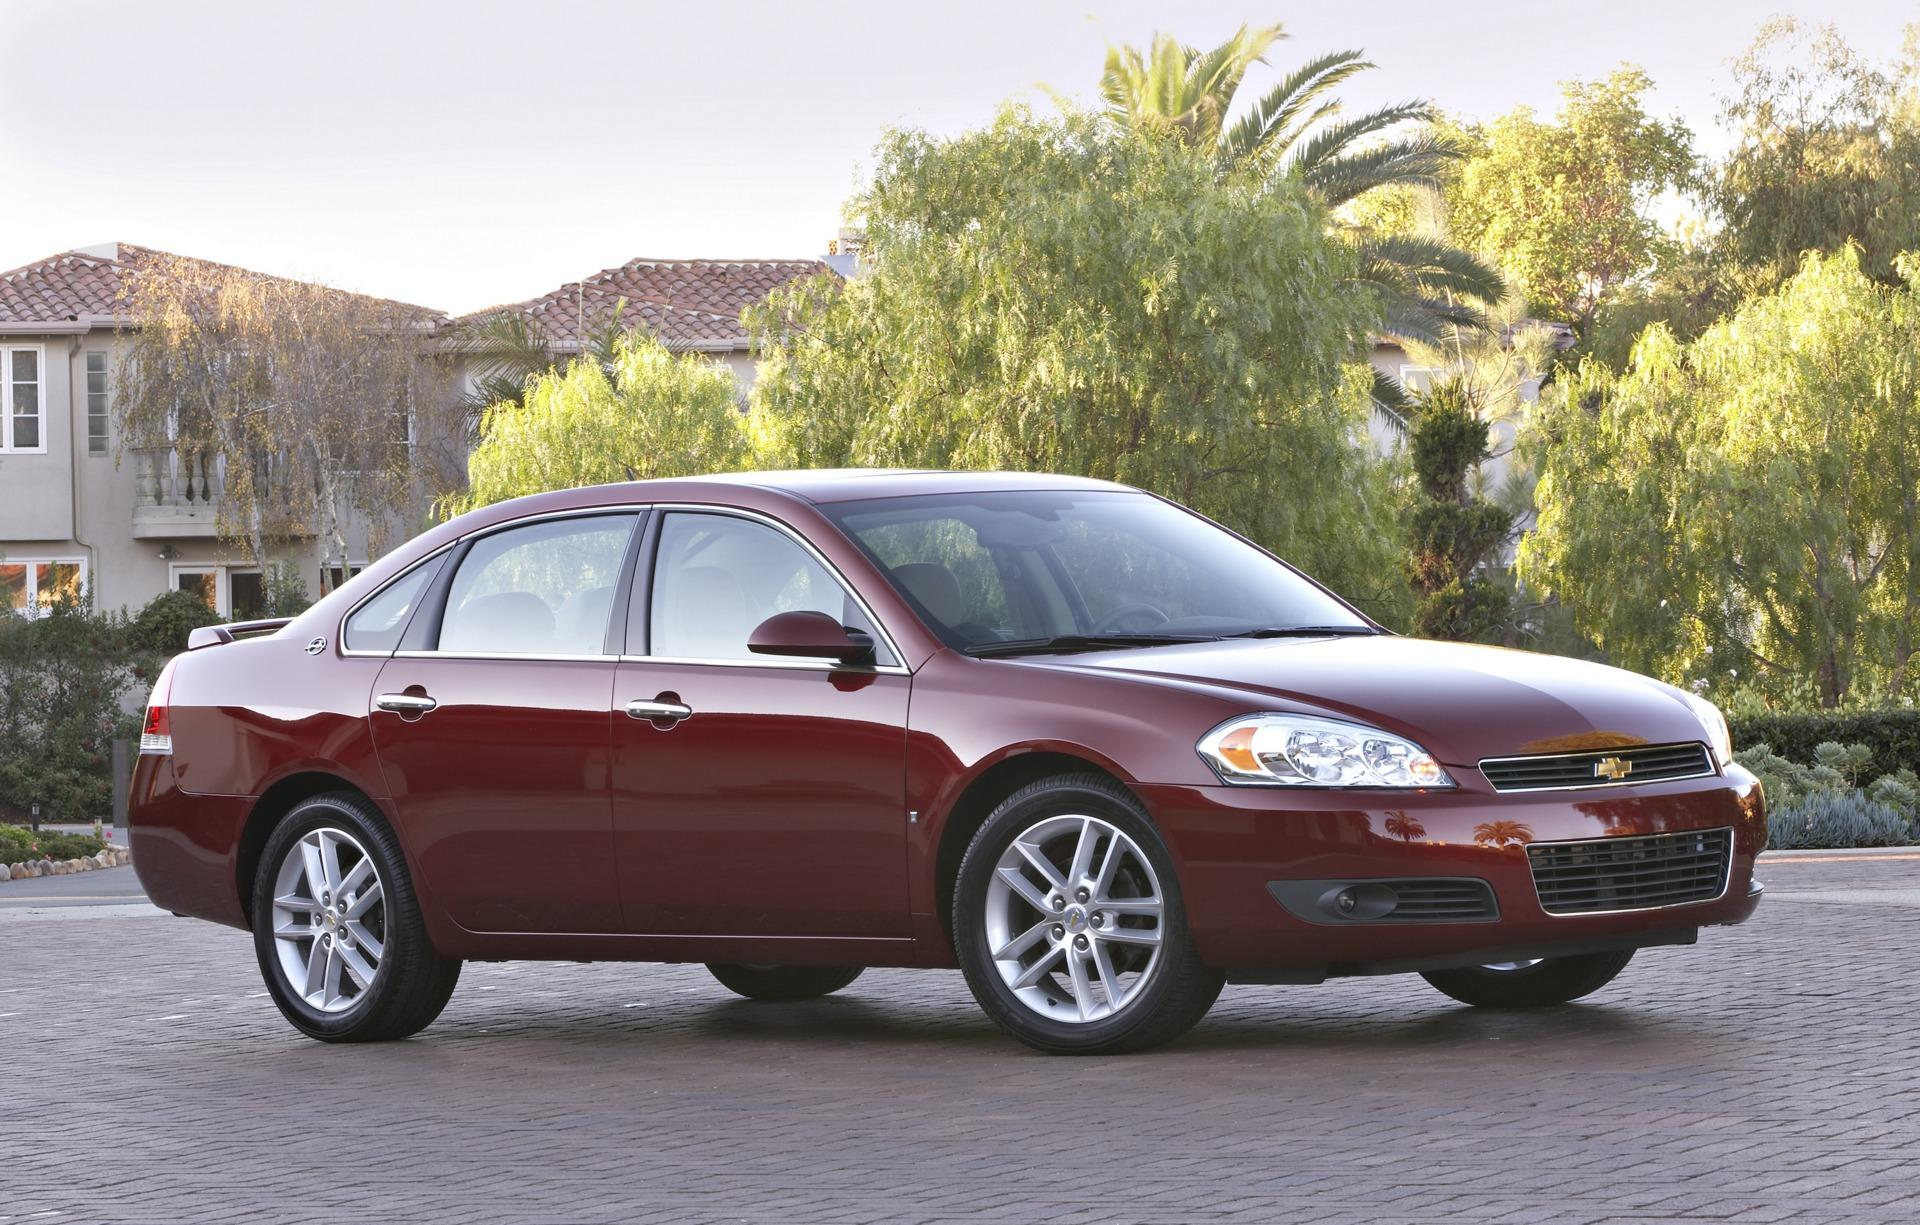 Chevrolet_Impala_2009_image-01 Great Description About 2011 Chevy Aveo Recalls with Captivating Images Cars Review